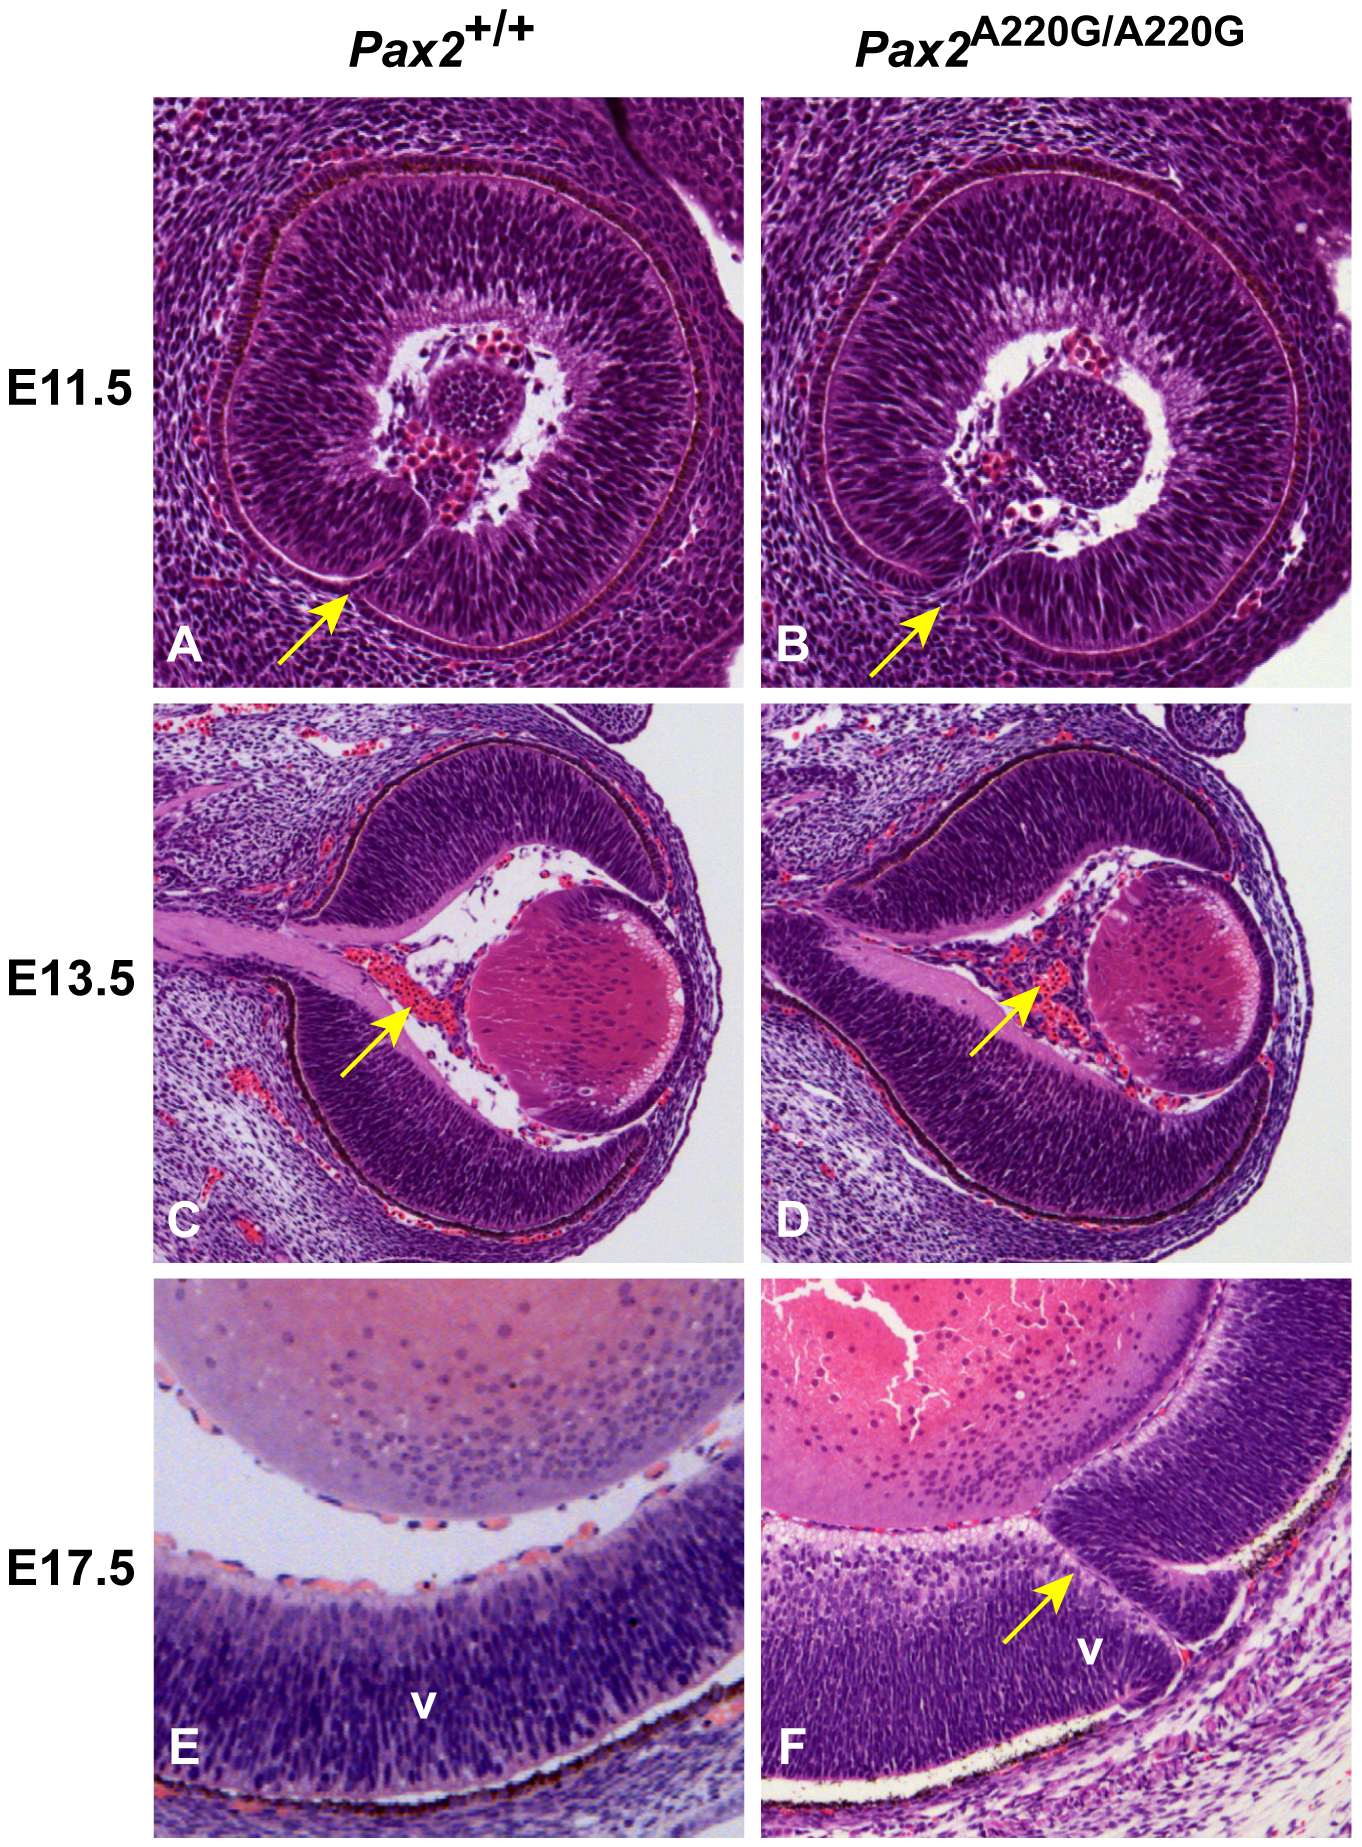 Histologic sections of <i>Pax2<sup>+/+</sup></i> and <i>Pax2<sup>A220G/A220G</sup></i> mouse eyes at three embryonic time points.